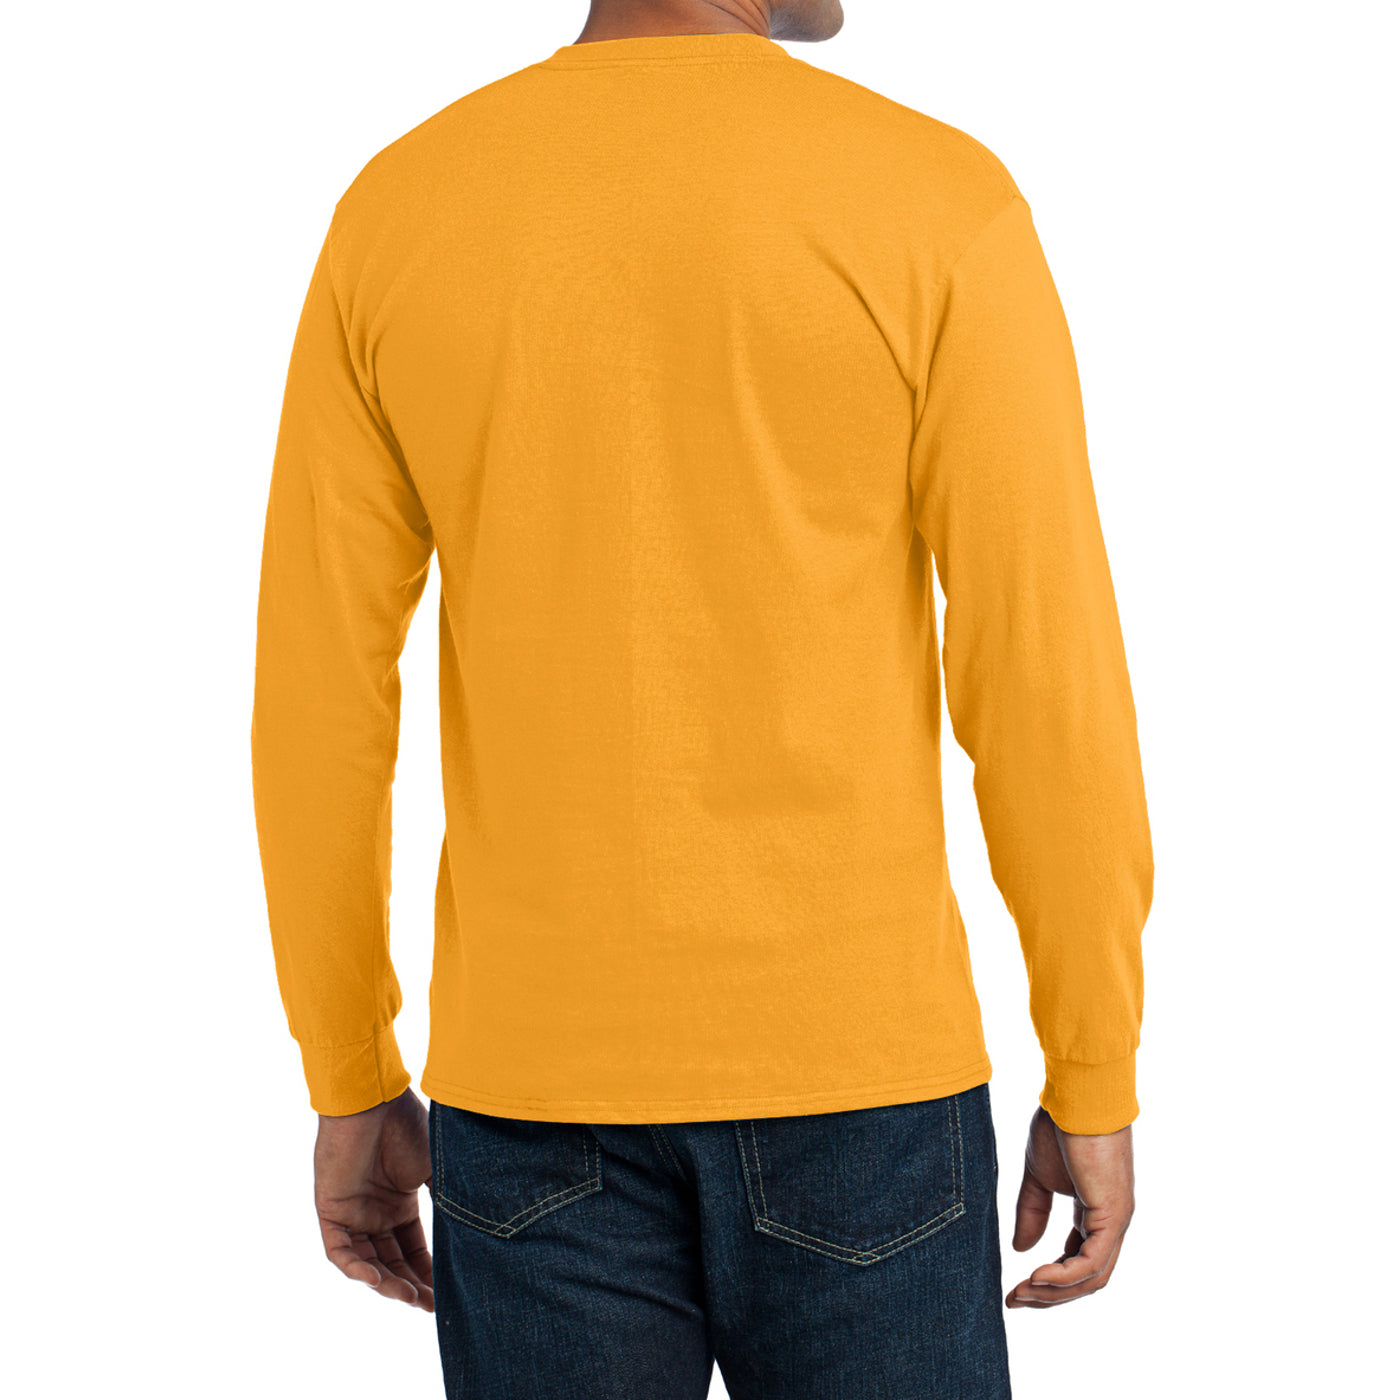 Men's Long Sleeve Core Blend Tee - Gold – Back